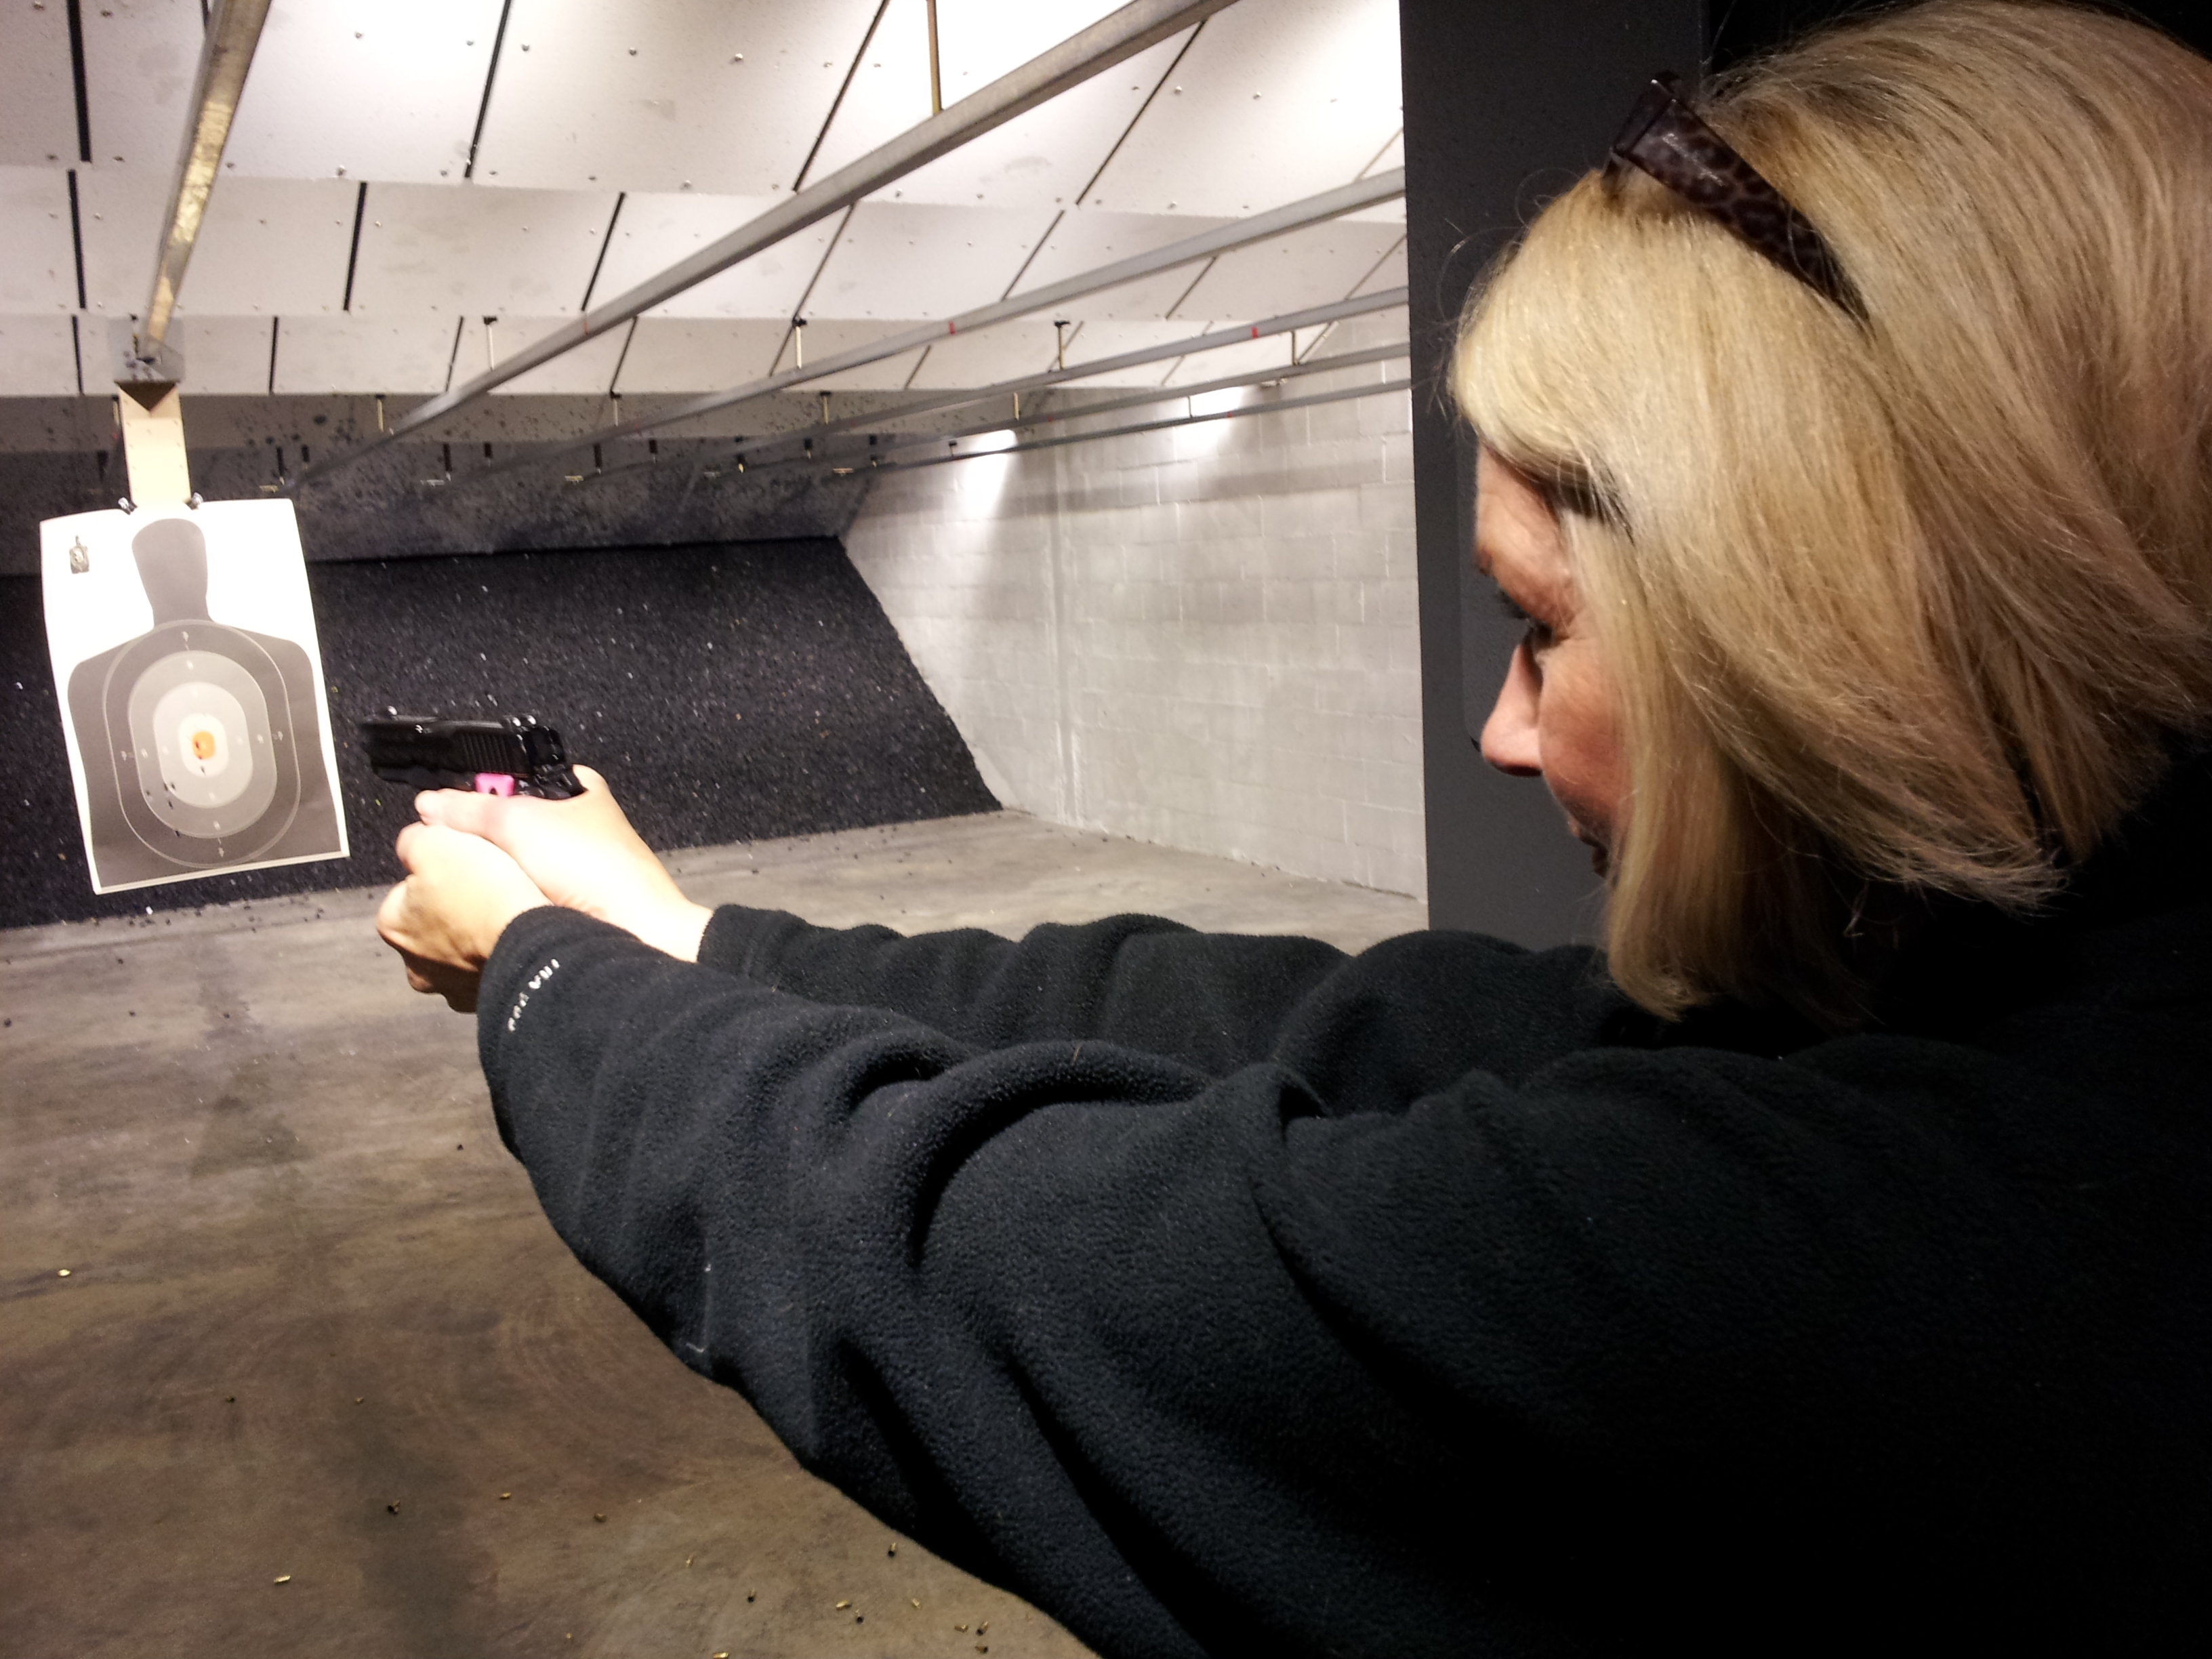 Women And Guns Promoting Personal Safety Through